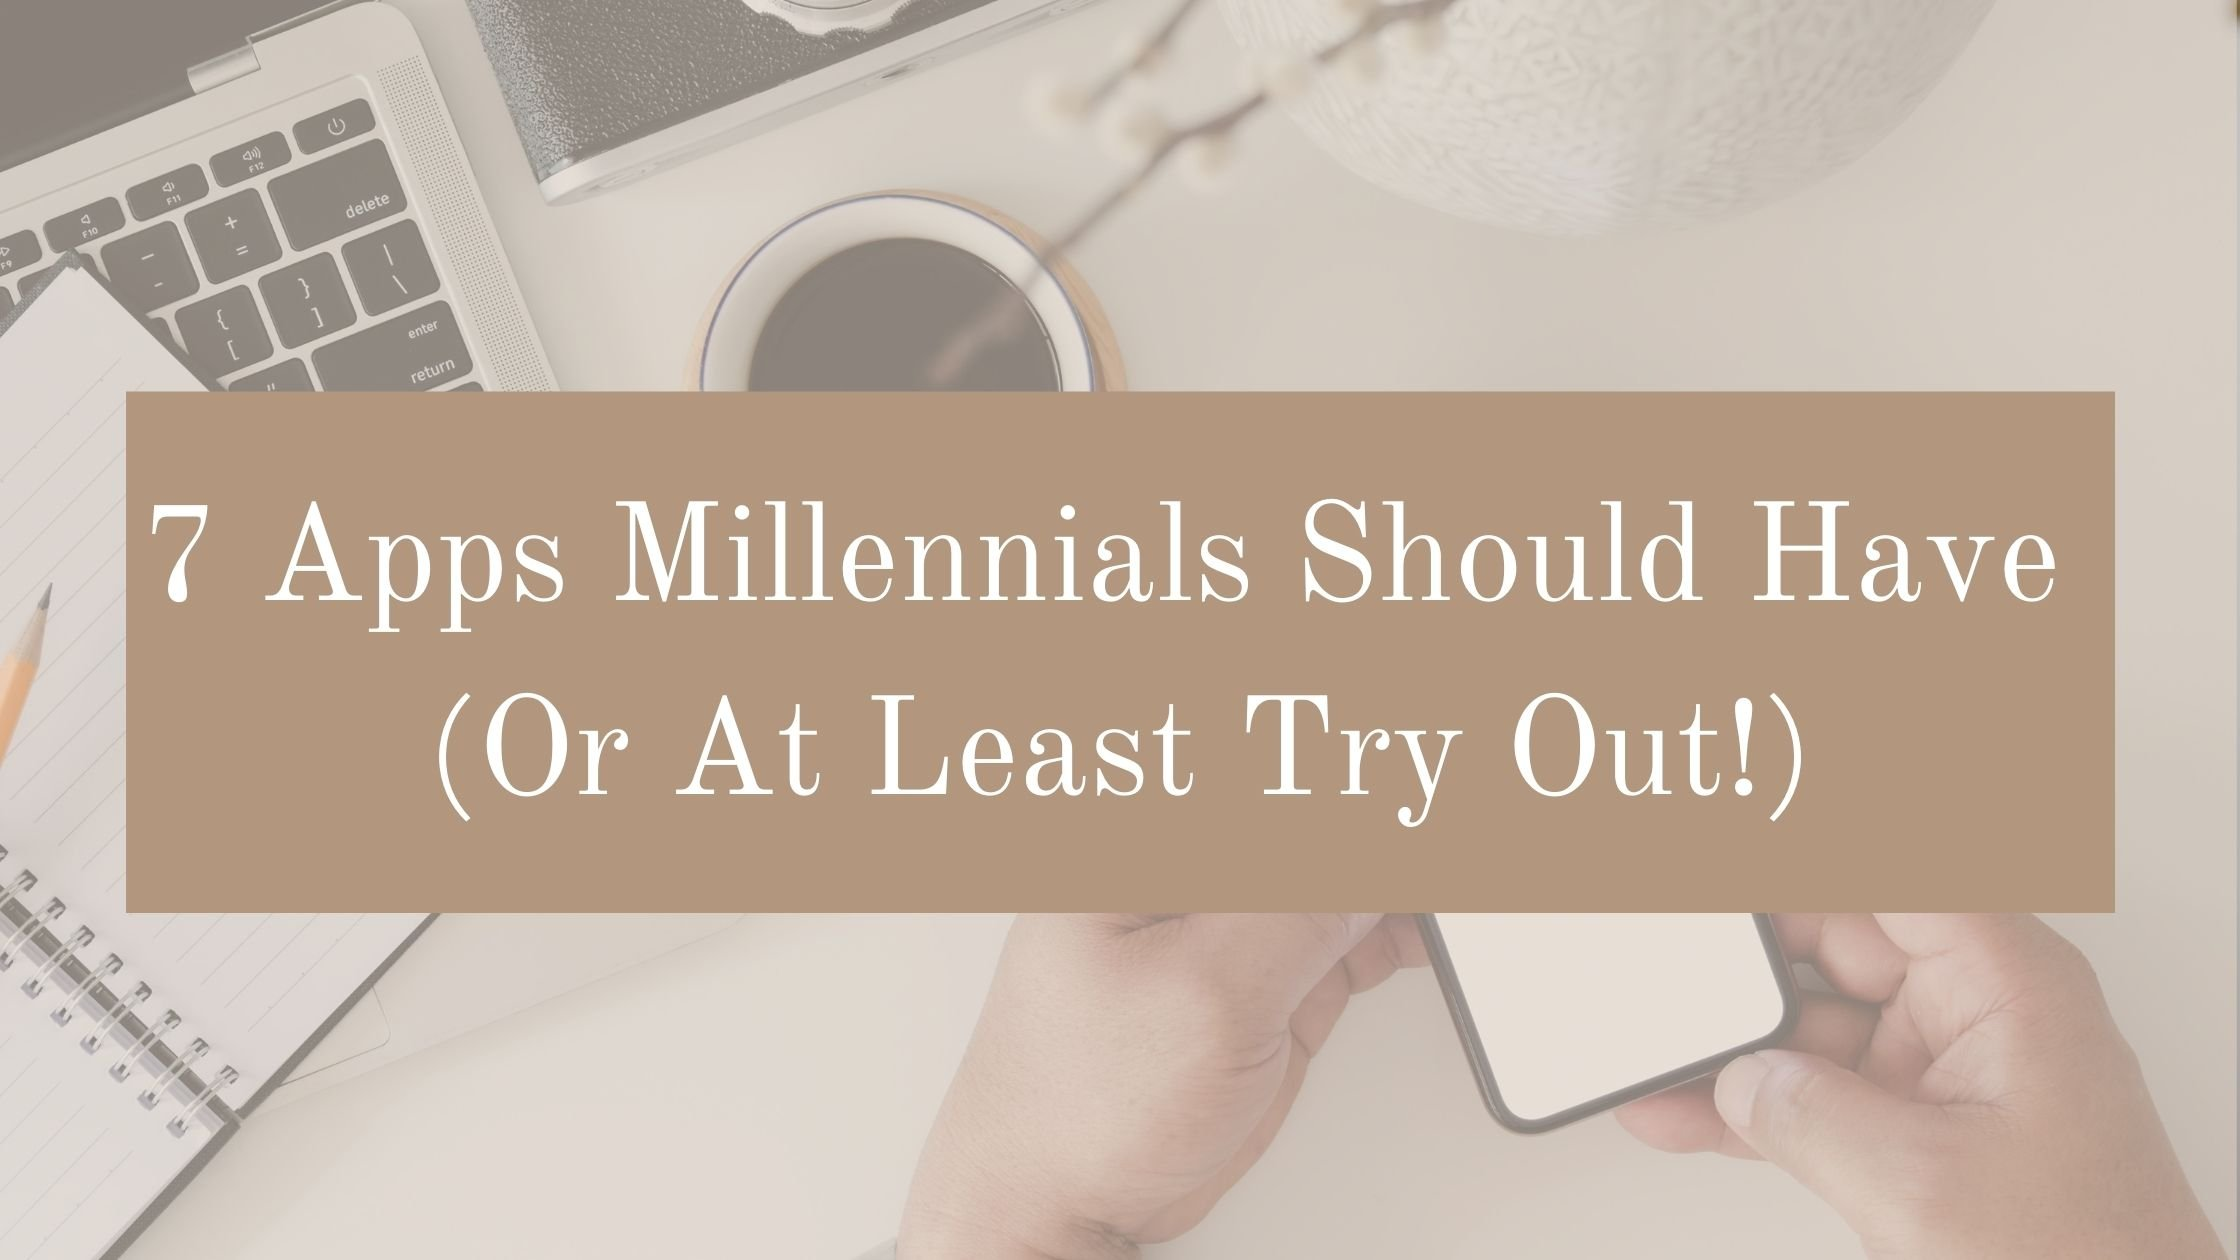 7 Apps Millennials Should Have (Or At Least Try Out!)